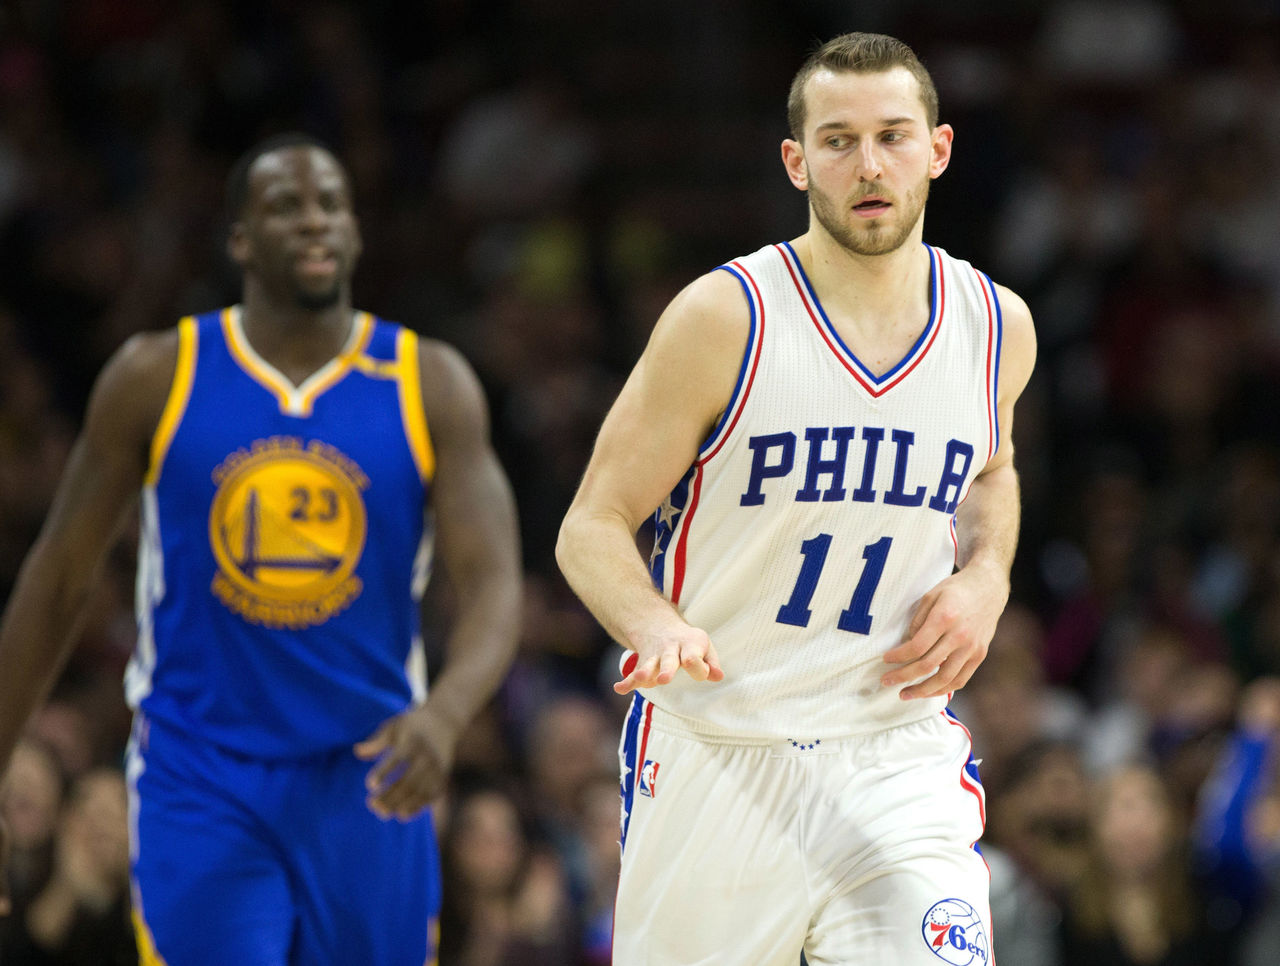 Cropped_2017-02-28t012915z_1516156979_nocid_rtrmadp_3_nba-golden-state-warriors-at-philadelphia-76ers